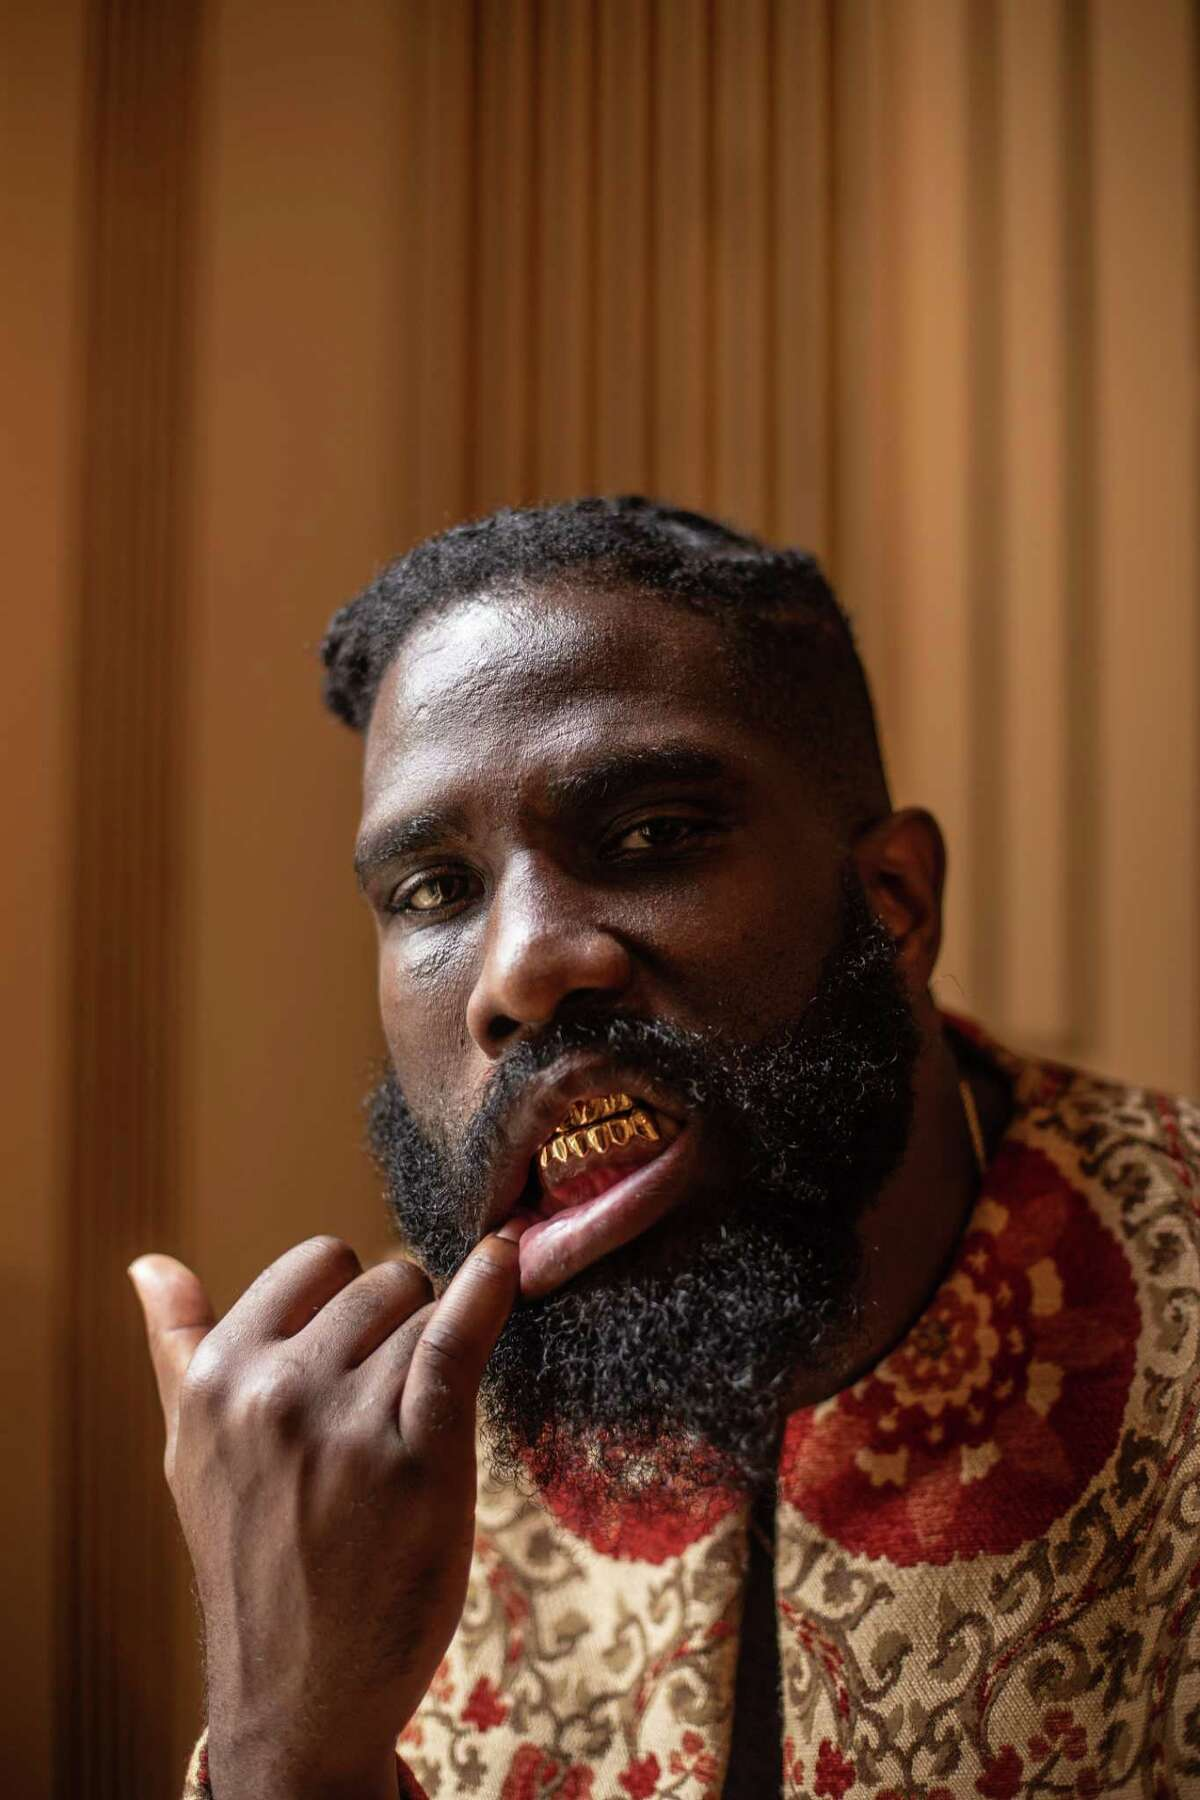 Tobe Nwigwe poses for a portrait on the set of his video shoot at the Rienzi museum and art gallery on Wednesday August 28, 2019 in Houston.